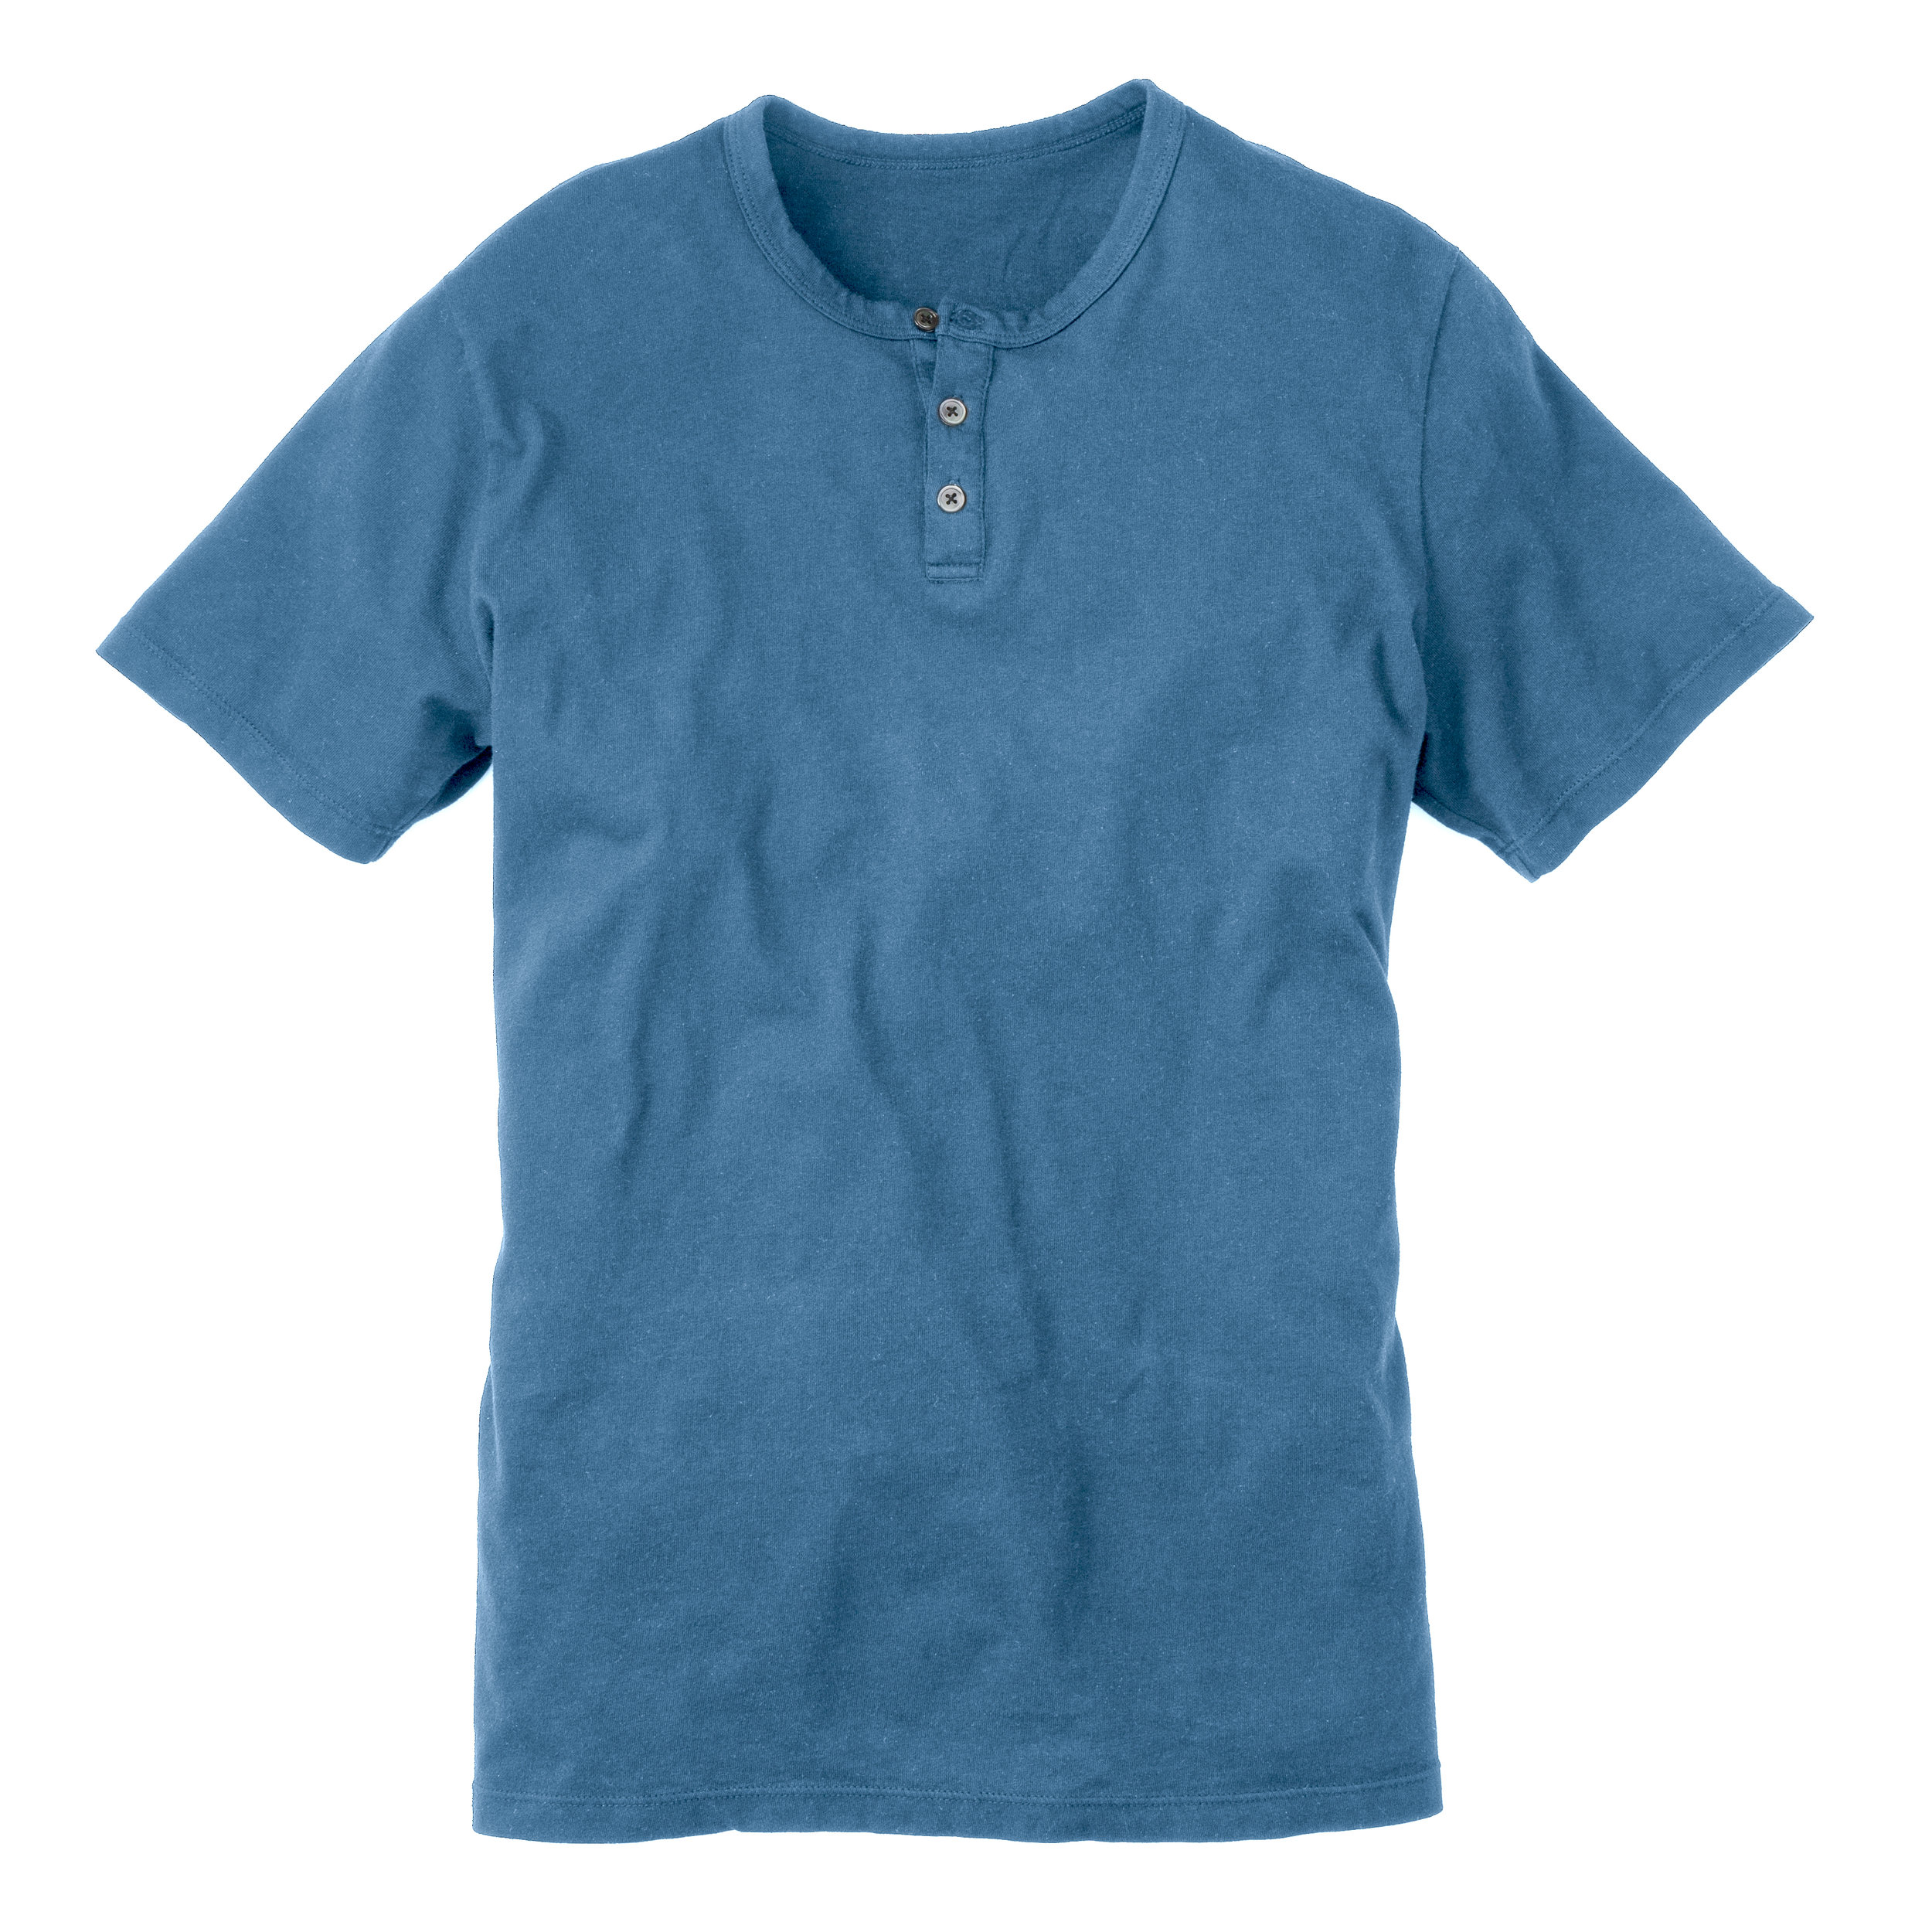 The Shirt - Lose the sleeves. A trusted favorite from Flint & Tinder ($36).